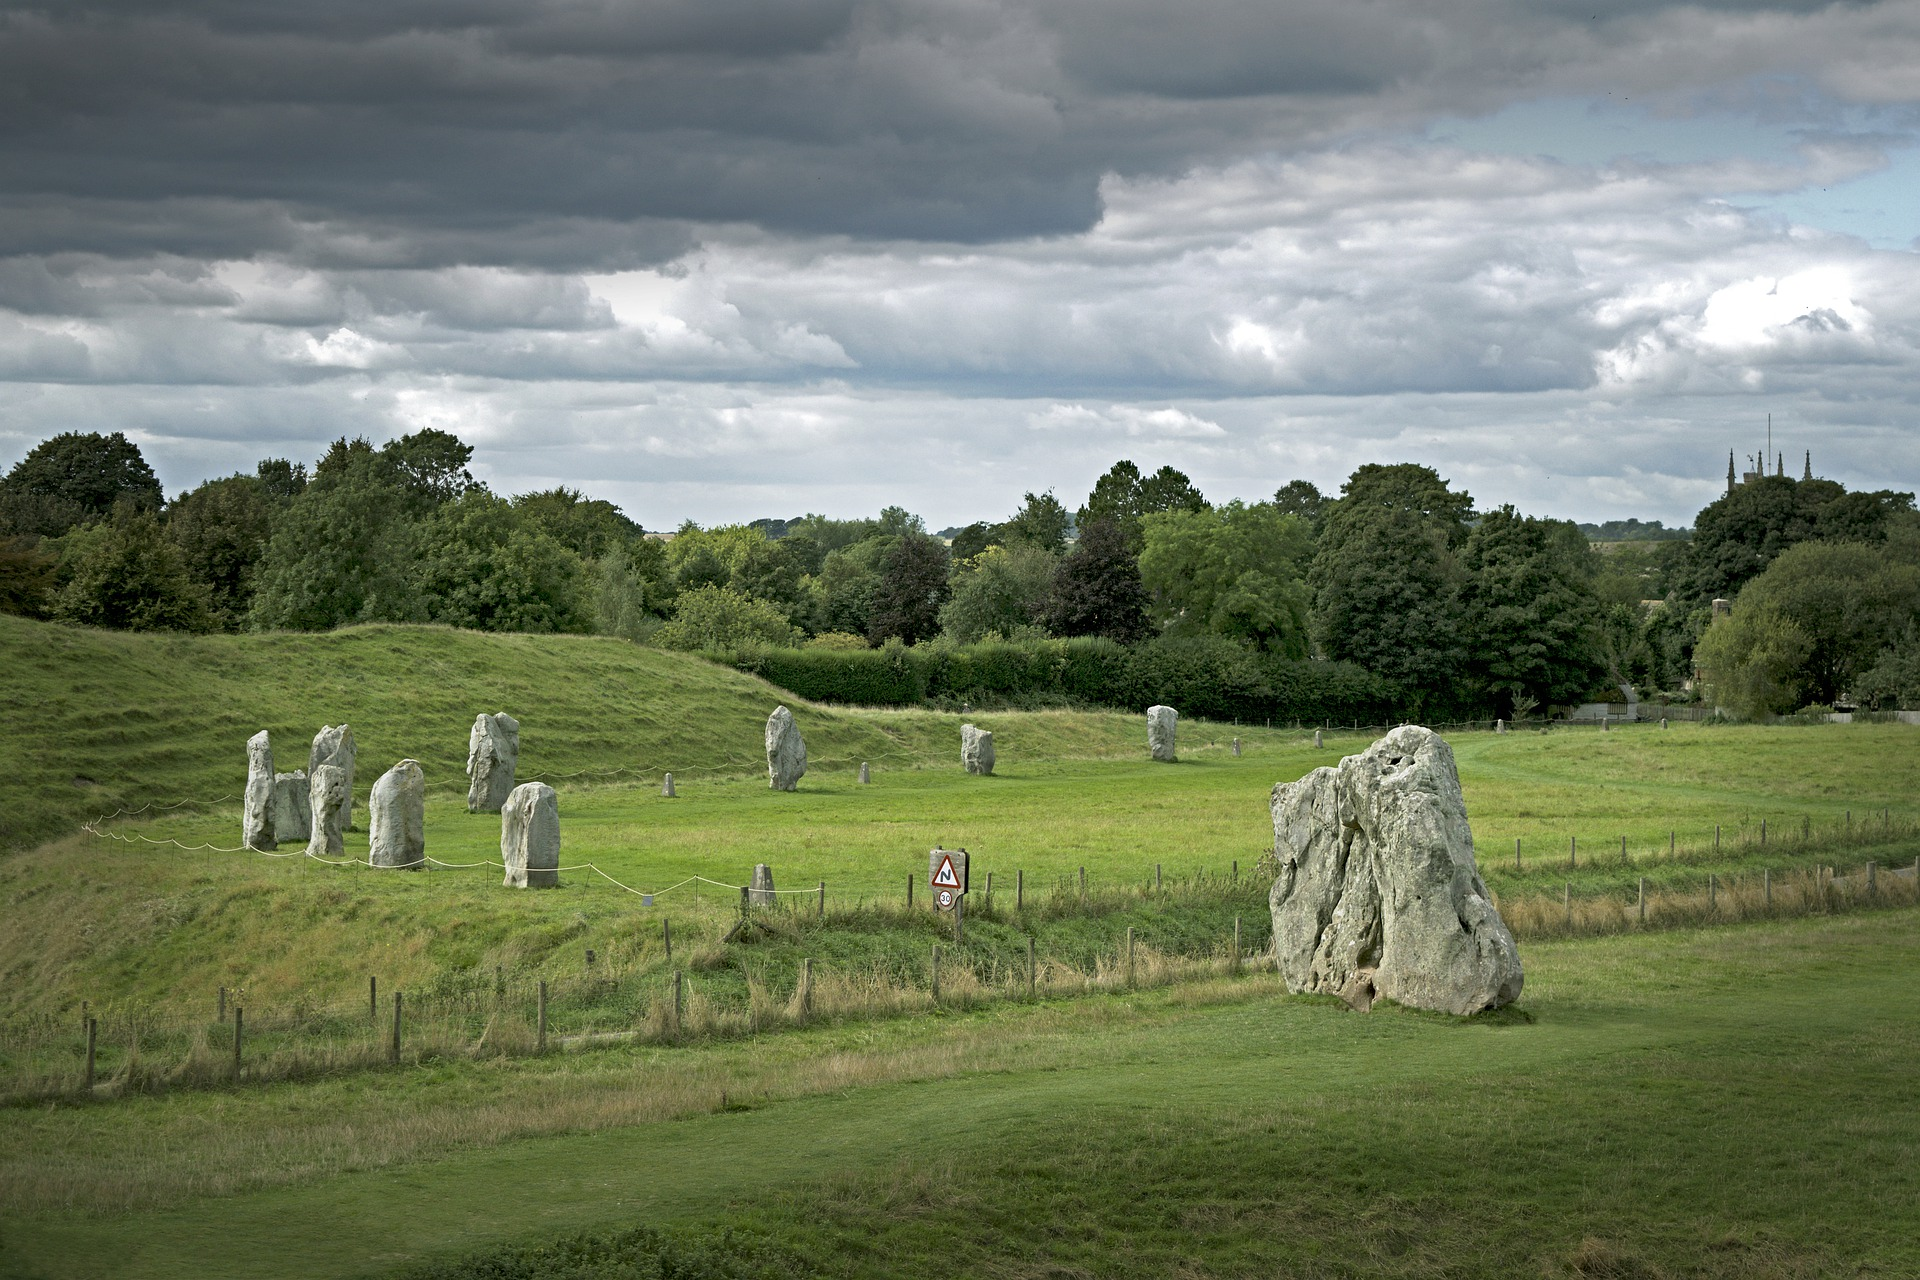 Heart of England | Avebury Henge & Stone Circle, Avebury, England, UK